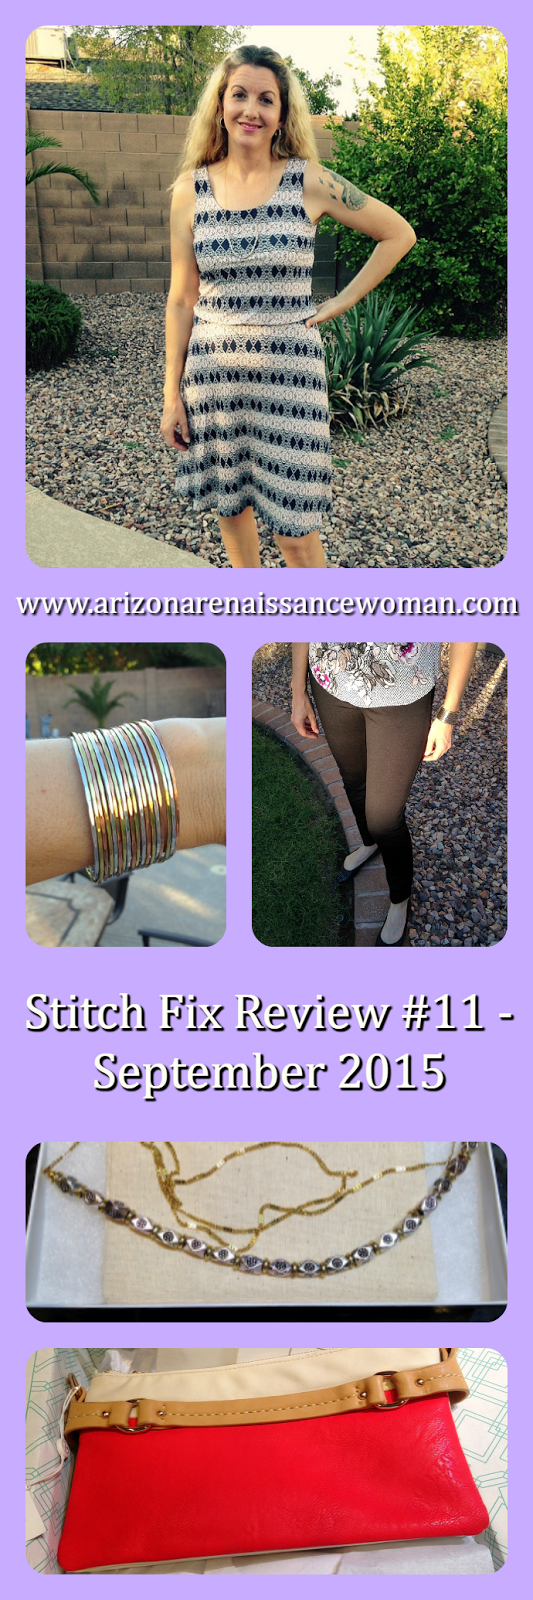 Stitch Fix Review #11 - September 2015 - Collage